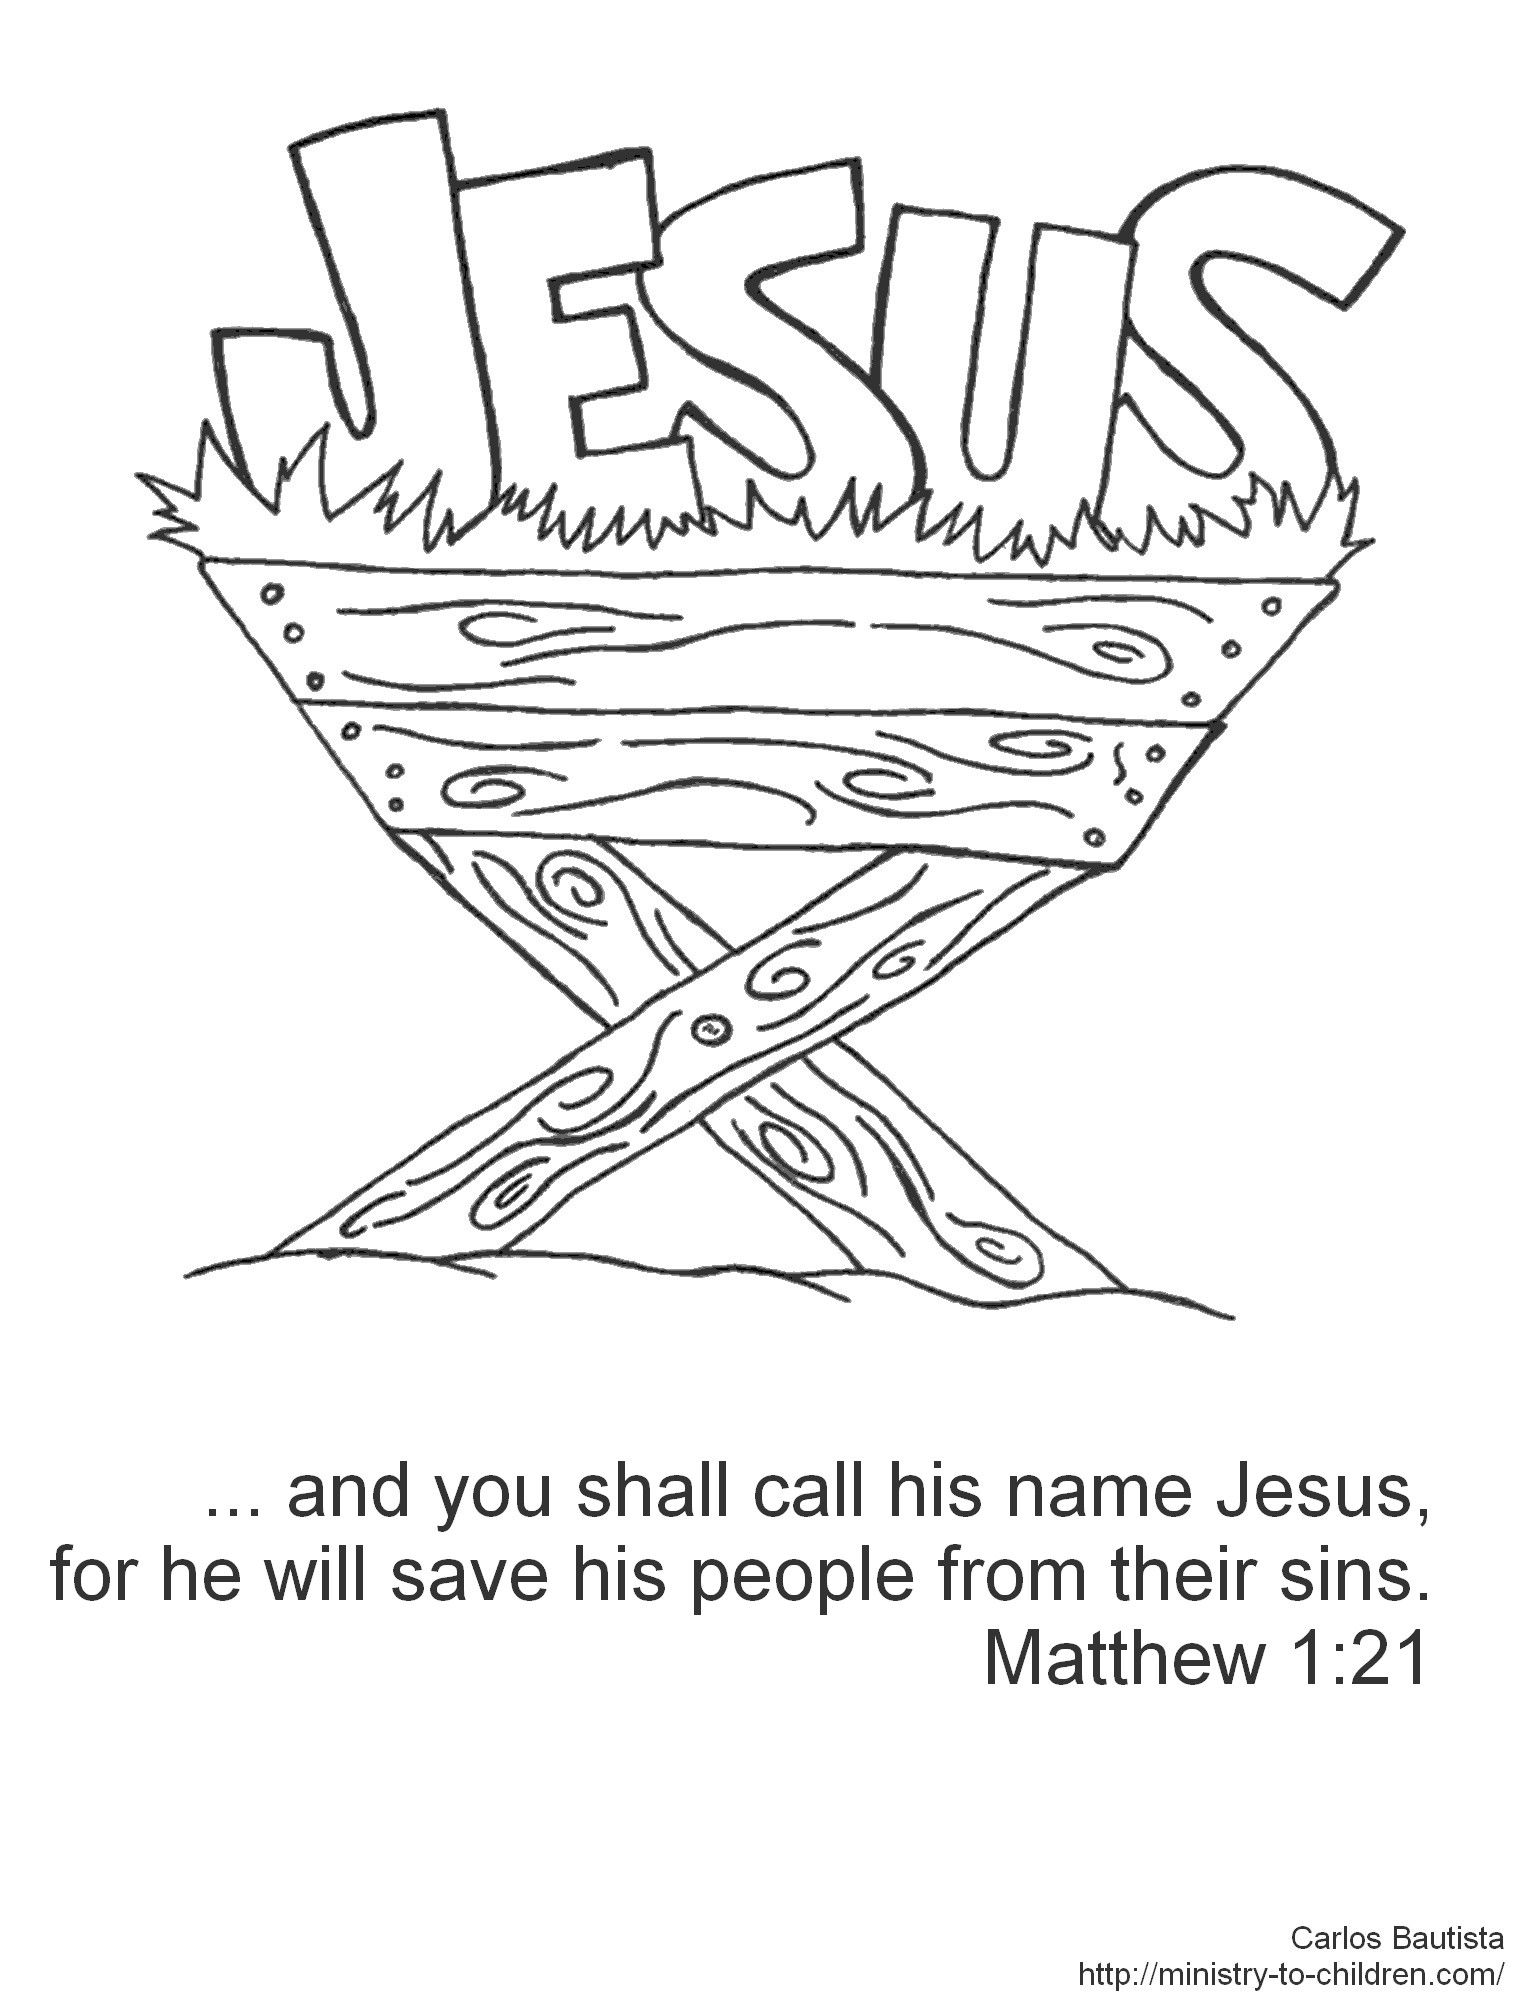 Pin By Mr Geller On Sunday School Ideas Bible Verse Coloring Page Jesus Coloring Pages Bible Verse Coloring